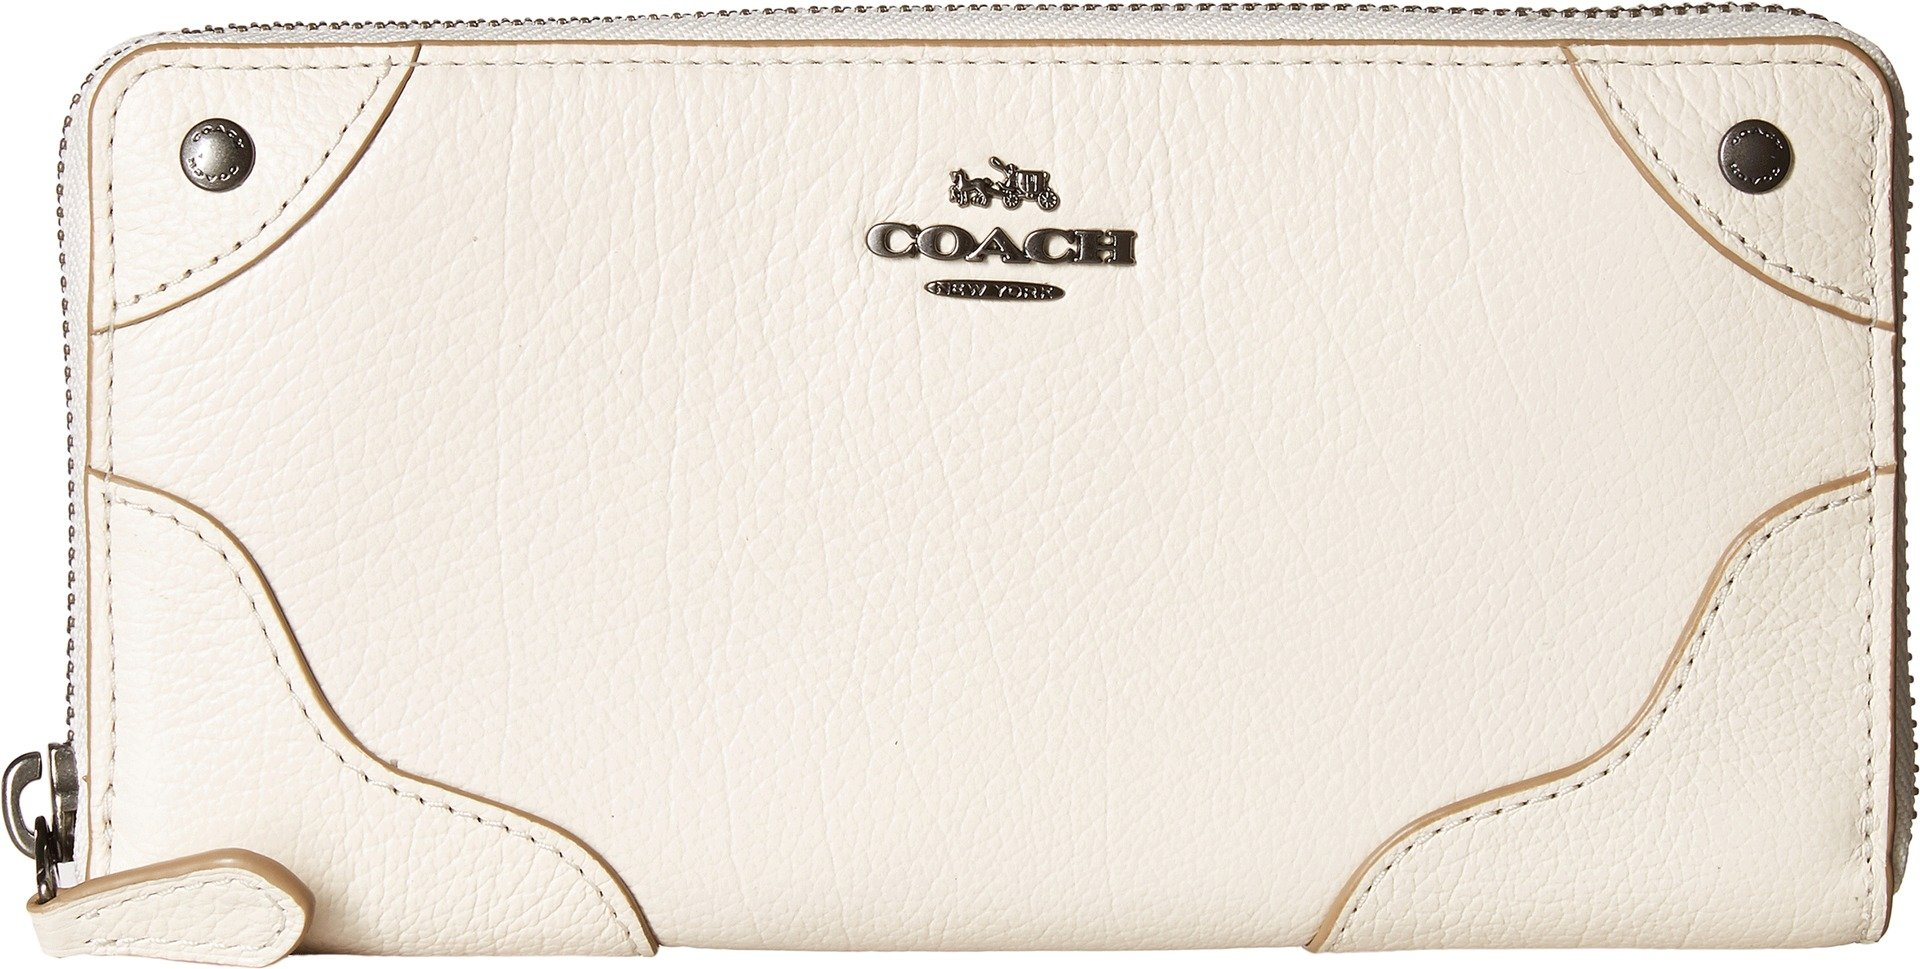 COACH Women's Grain Leather Mickie Wristlet Gunmetal One Size by Coach